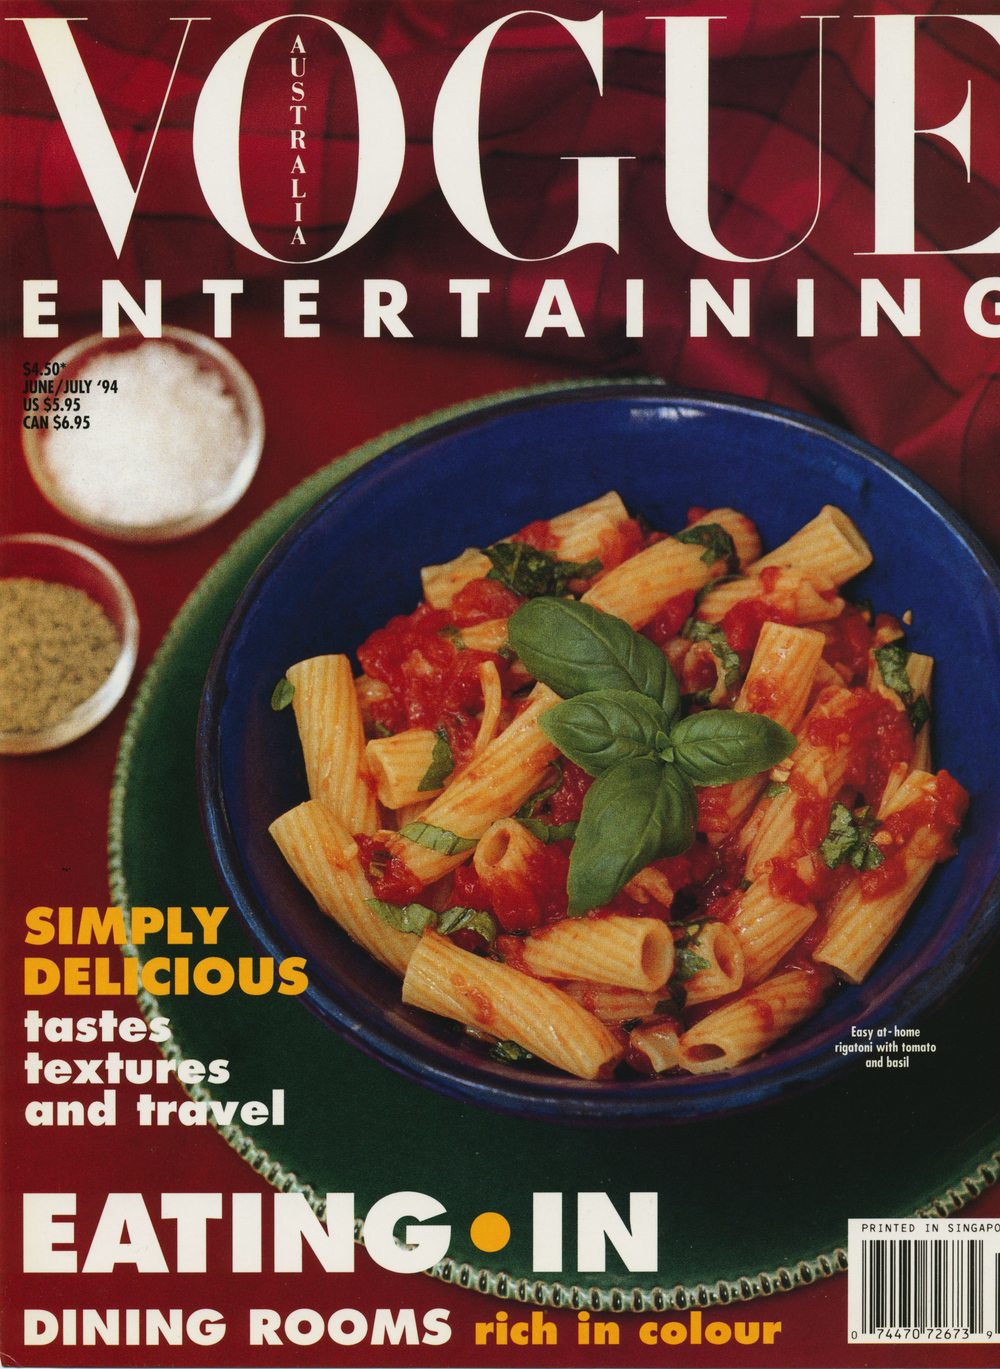 Vogue Entertaining Cover (2) copy.jpg